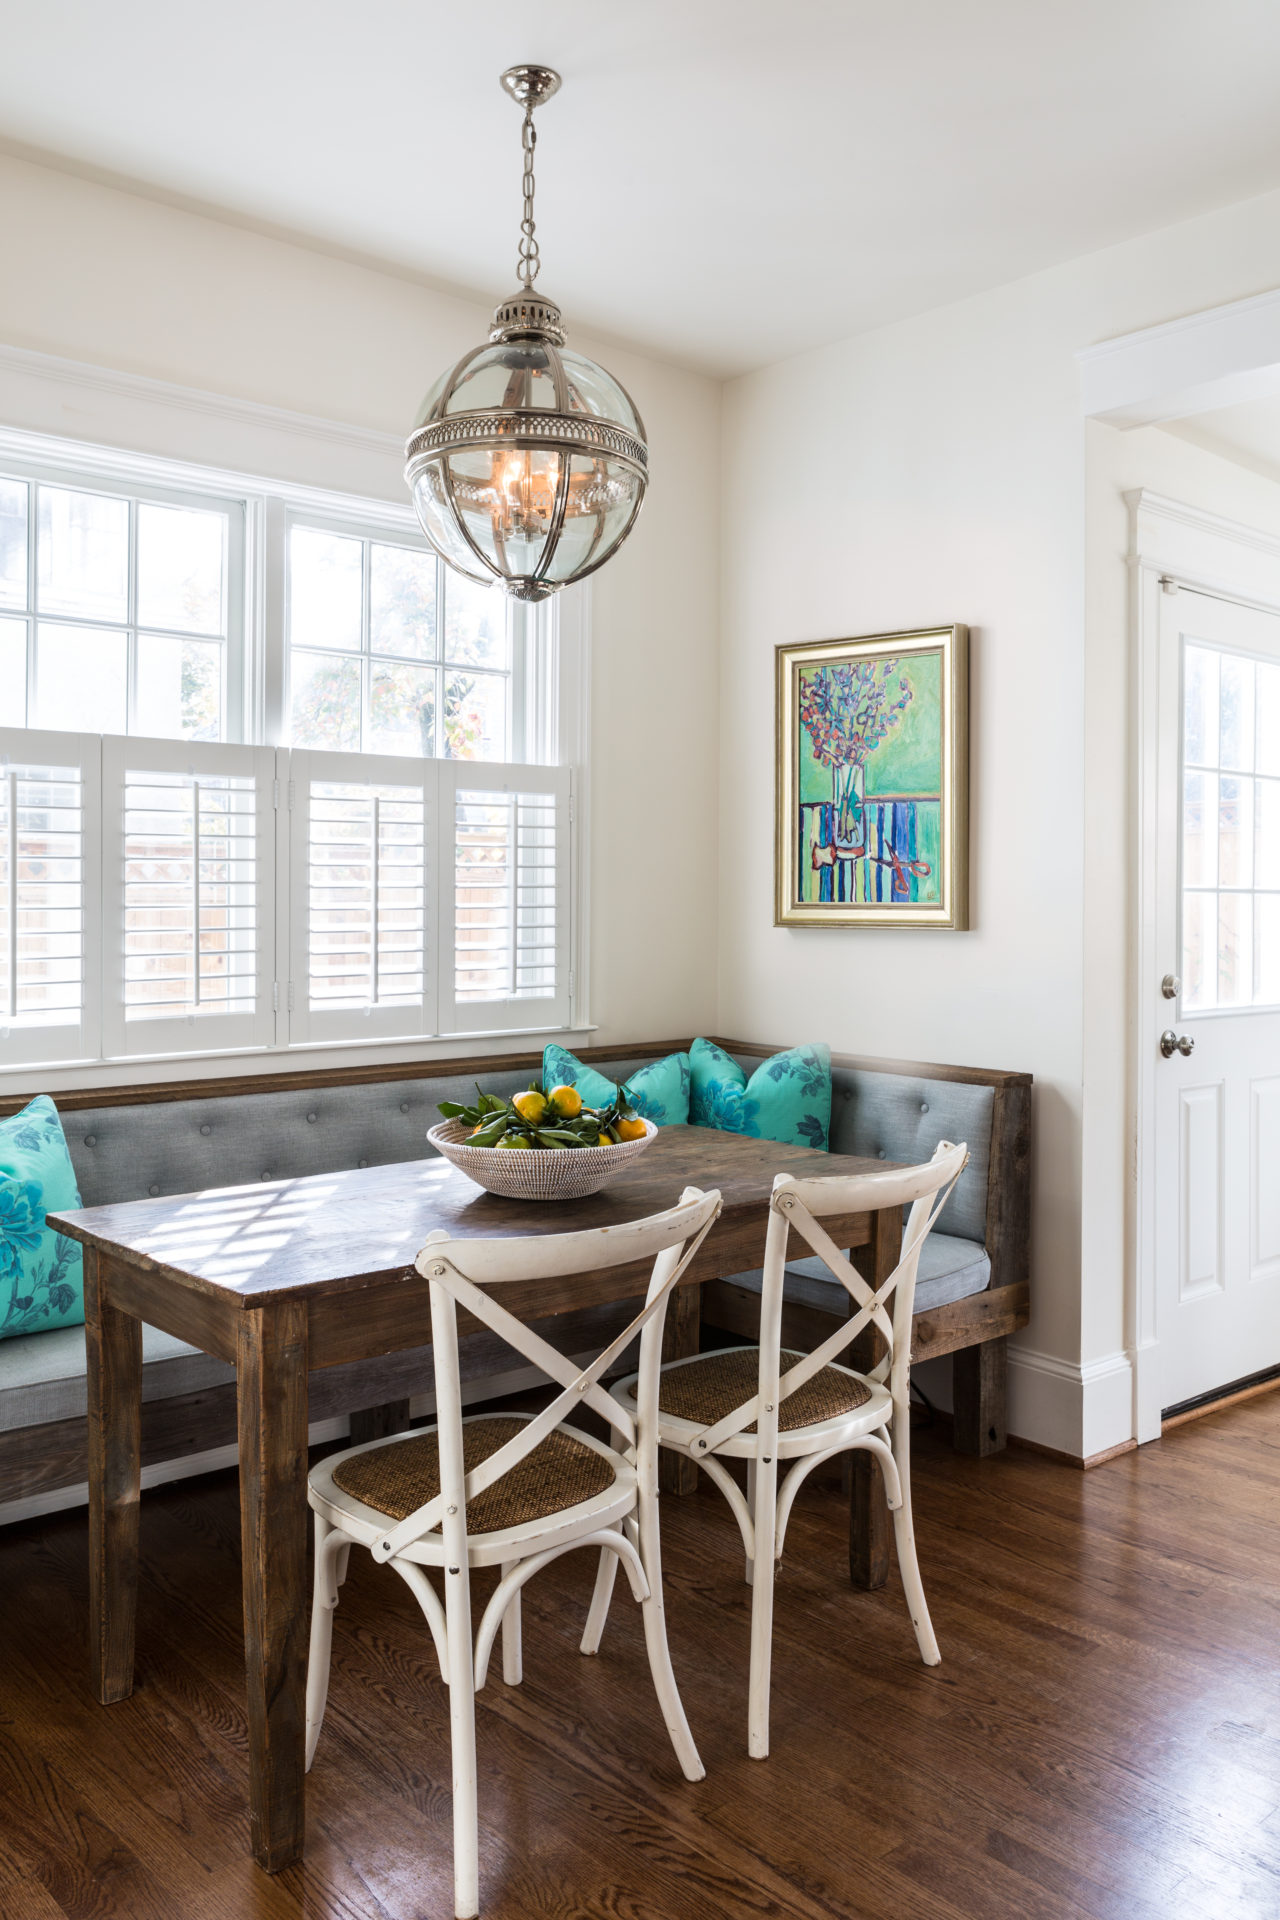 portfolio page gallery carolina guest international nc interior designers design cottage north greensboro mbid bedroom blue home vacation and project yellow